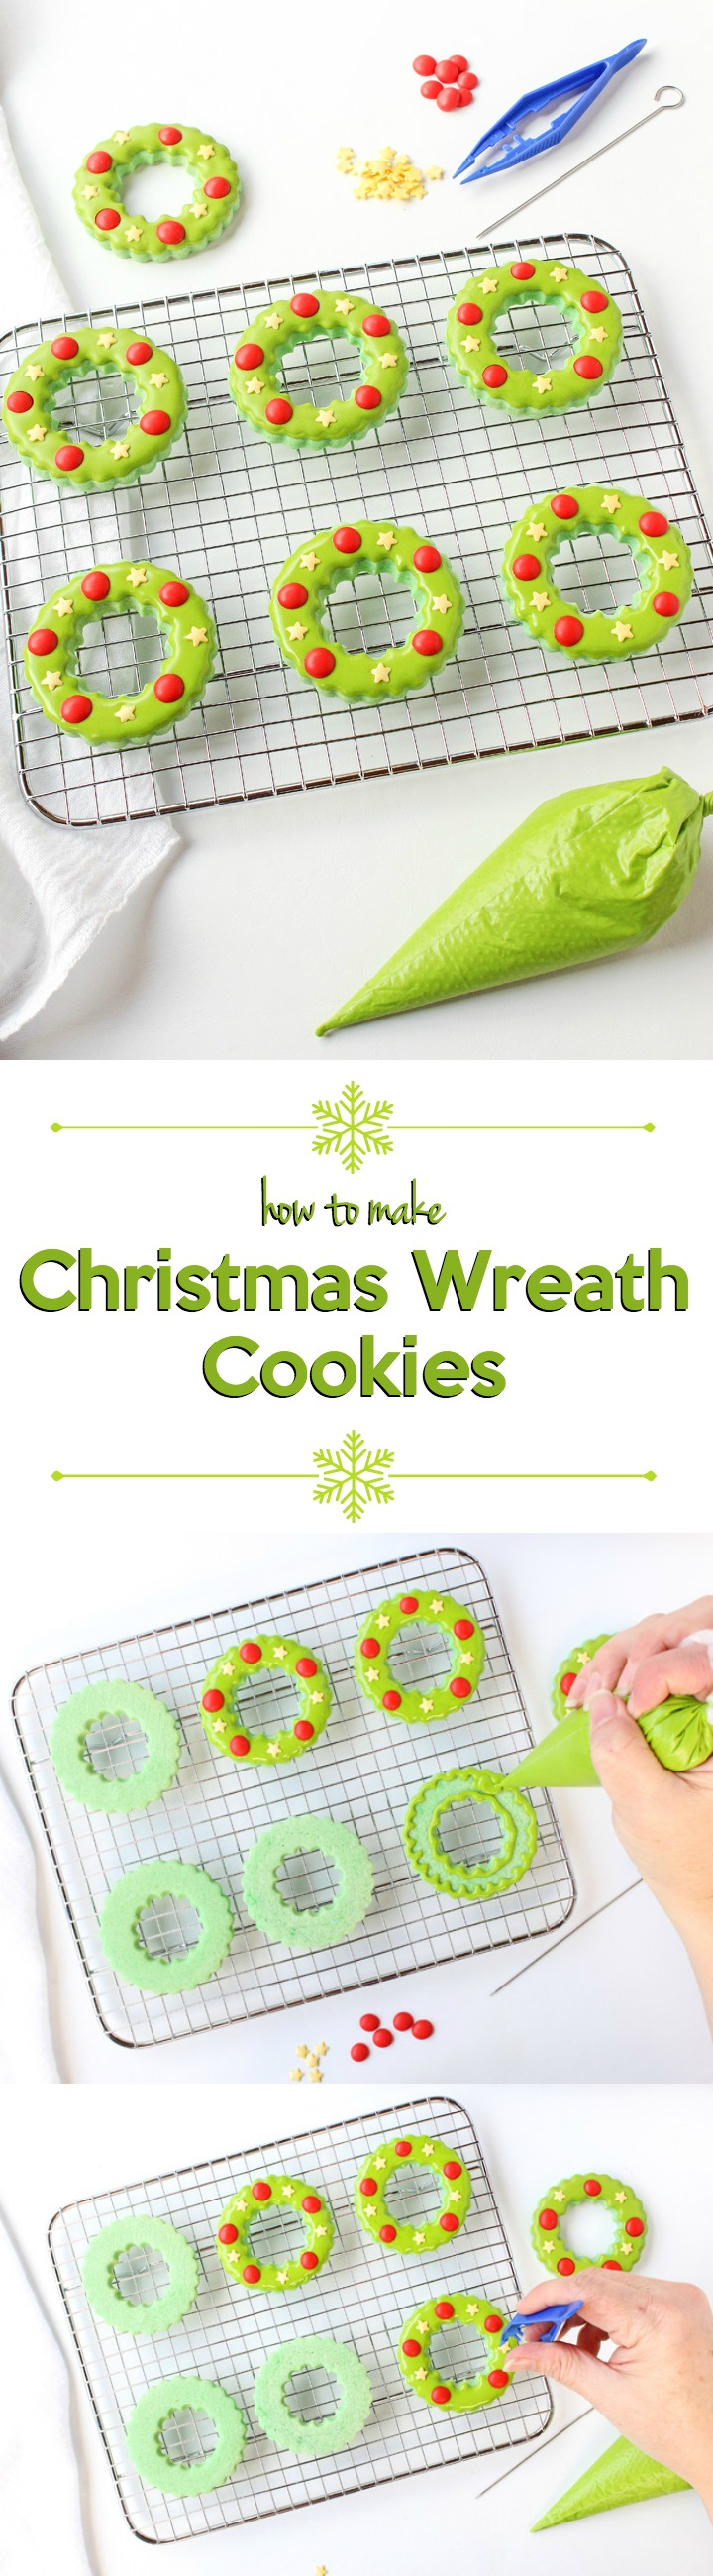 How to Make Adorable and Simple Christmas Wreath Cookies | The Bearfoot Baker